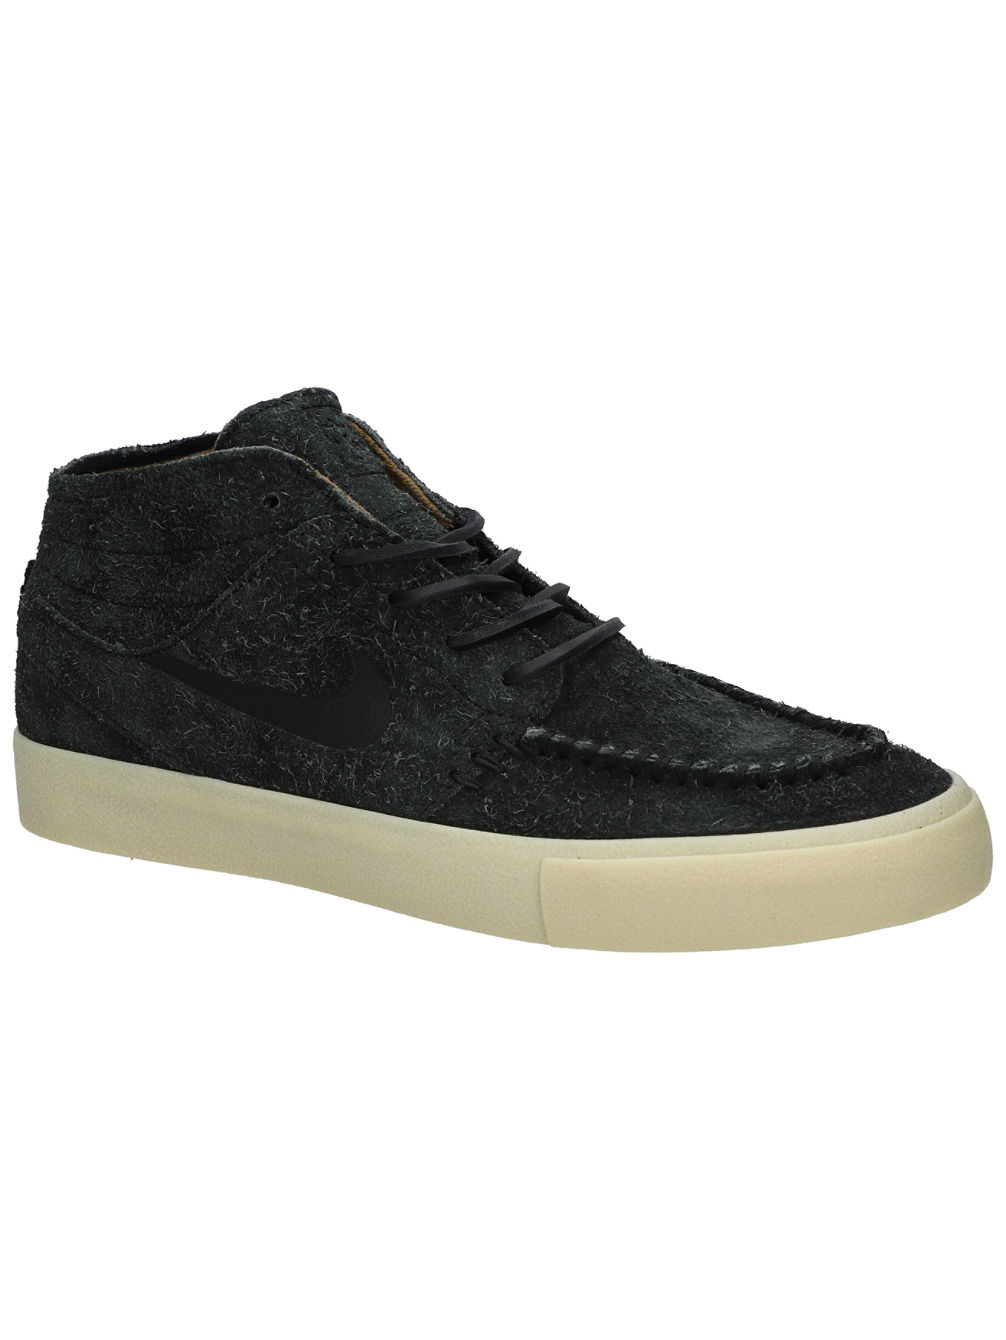 SB Zoom Janoski Mid Crafted Sneakers